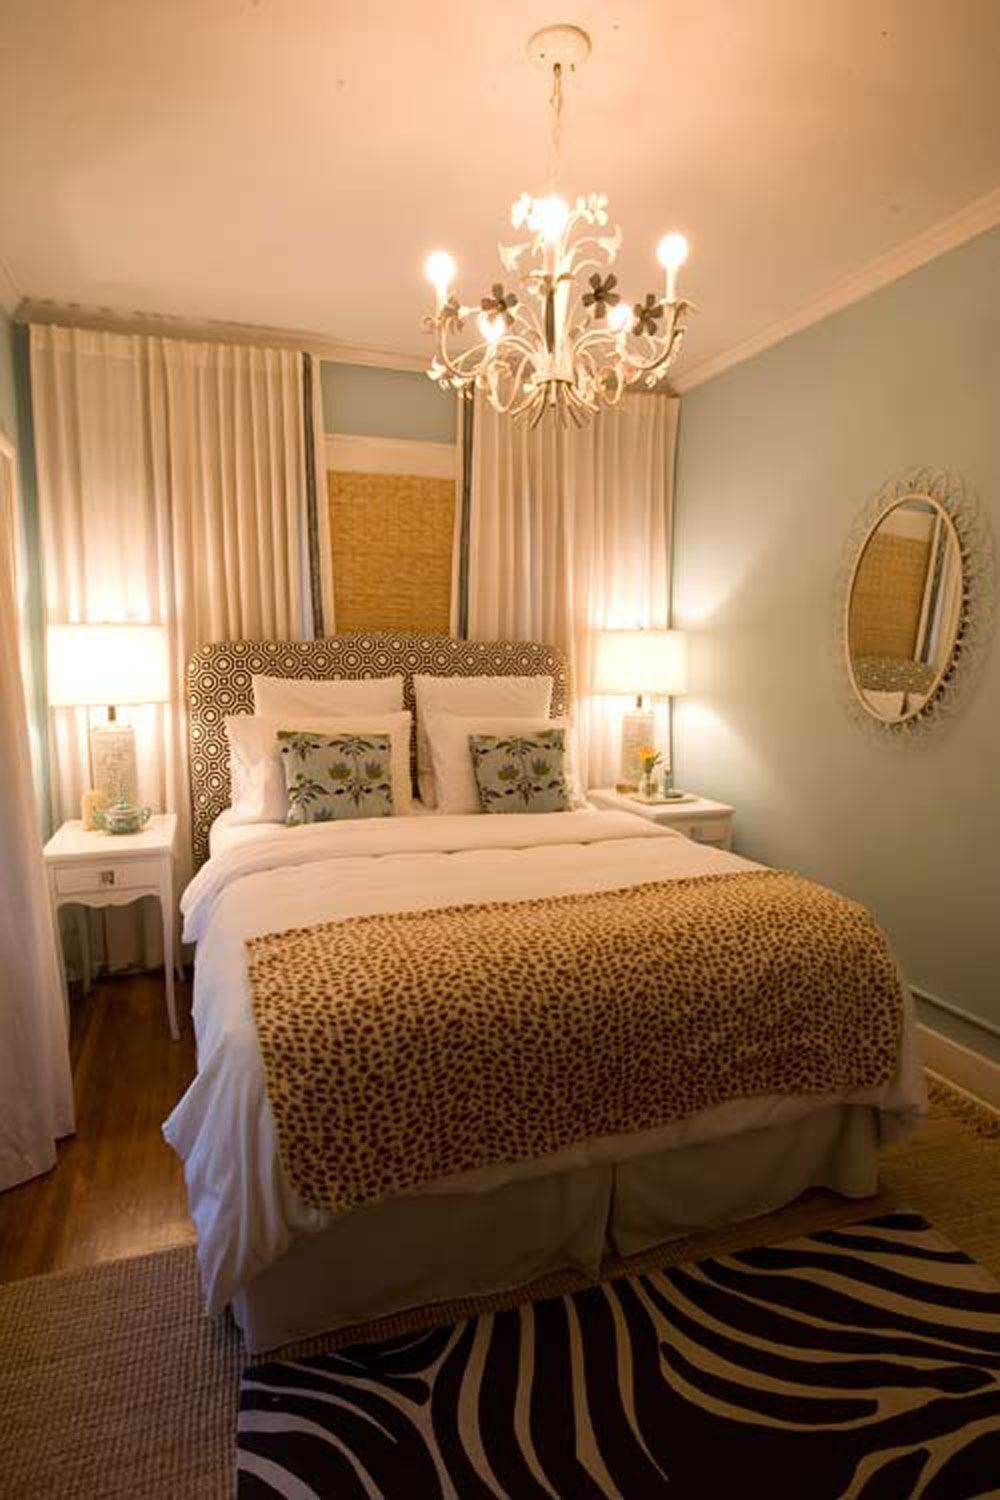 Design Tips For Decorating A Small Bedroom On A Budget | Pinterest ...